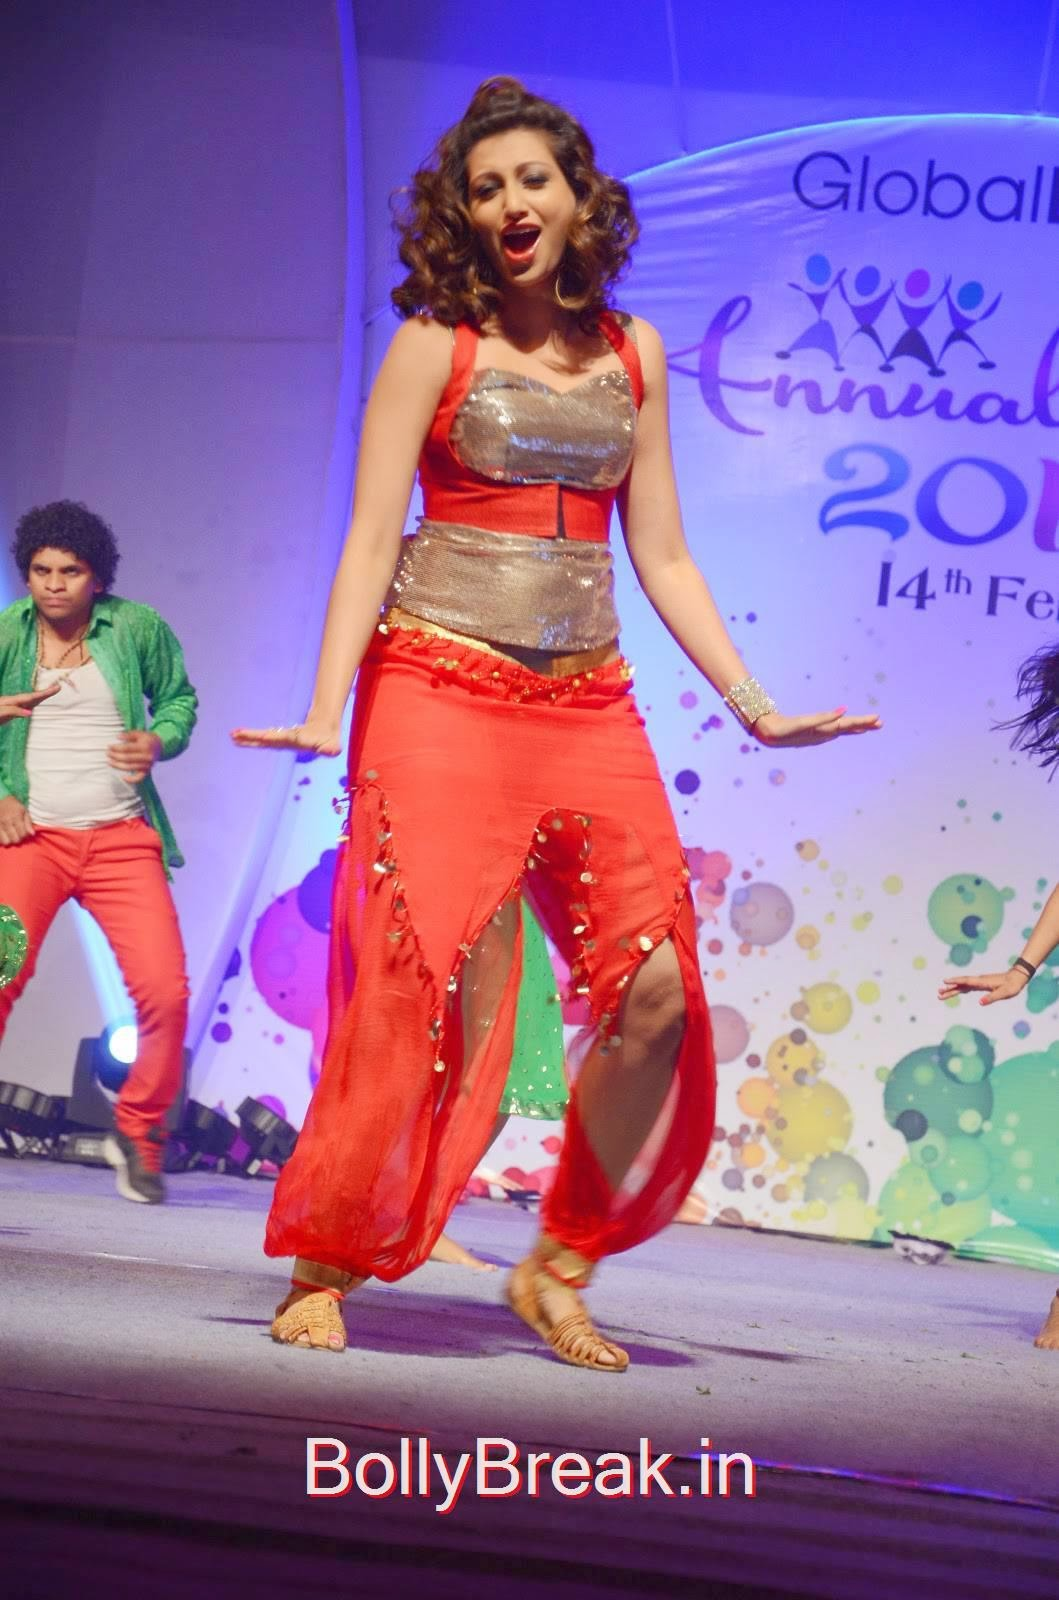 Hamsa Nandini Dancing Stills in Red and Silver Dress, Hamsa Nandini Hot Pics While Dancing in Red and Silver Dress